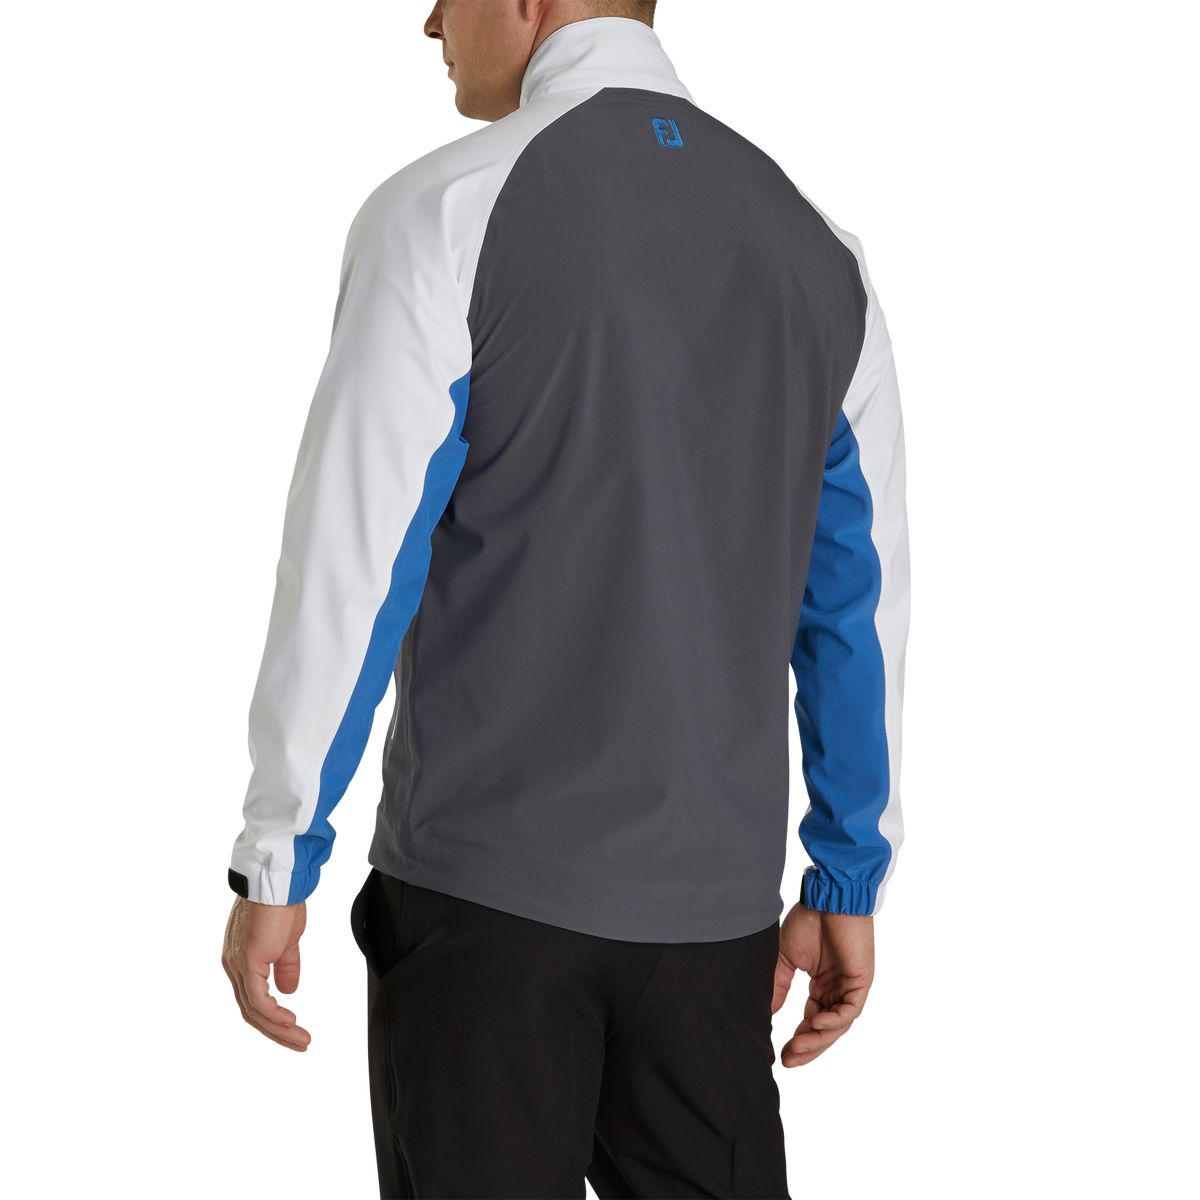 DryJoys Tour LTS Jacket